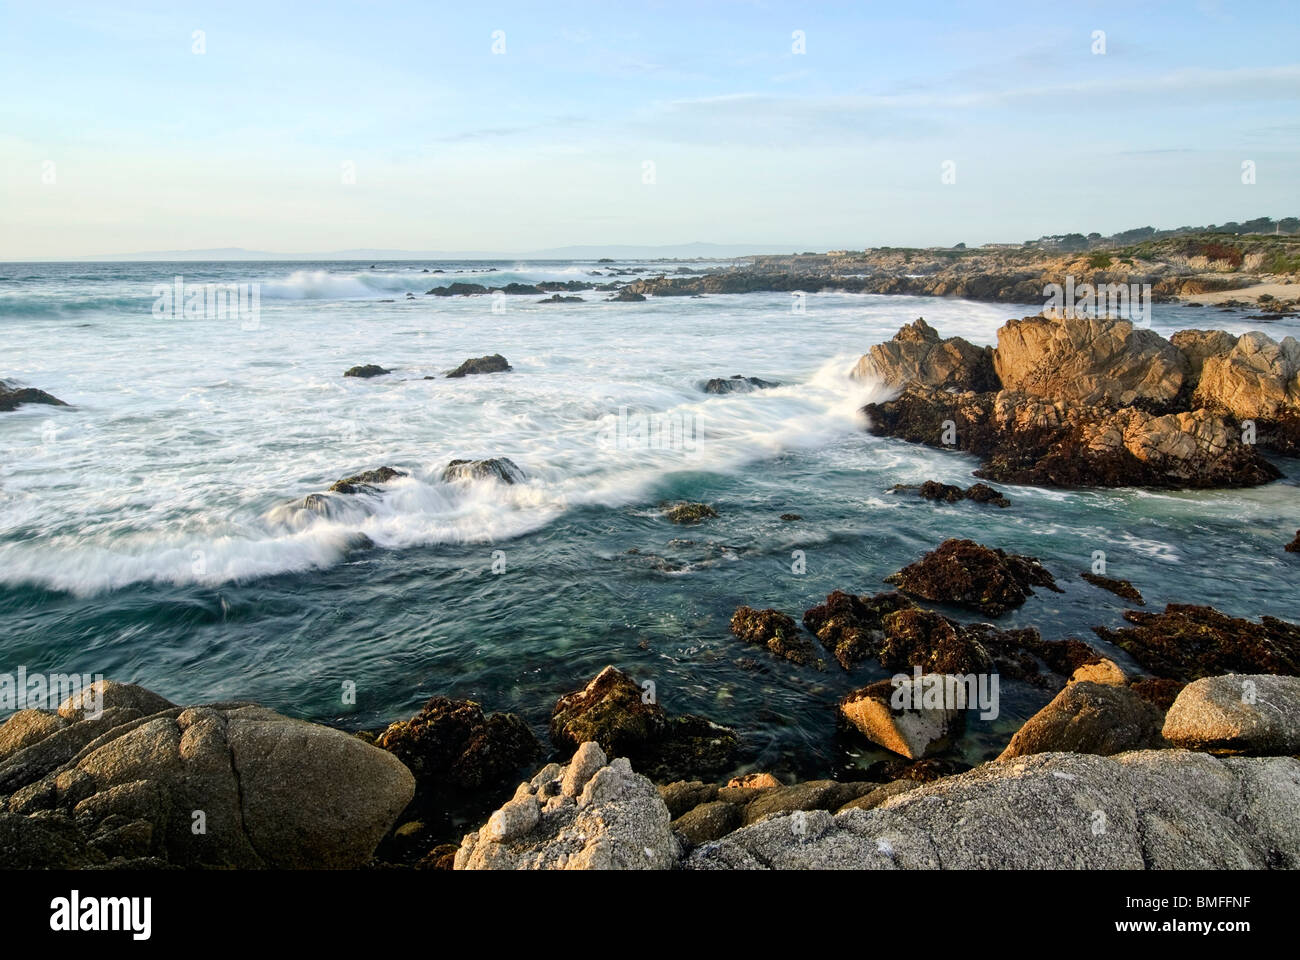 Gentle waves on rocky Asilomar Beach. Located on the Monterey Peninsula in the city of Pacific Grove. - Stock Image